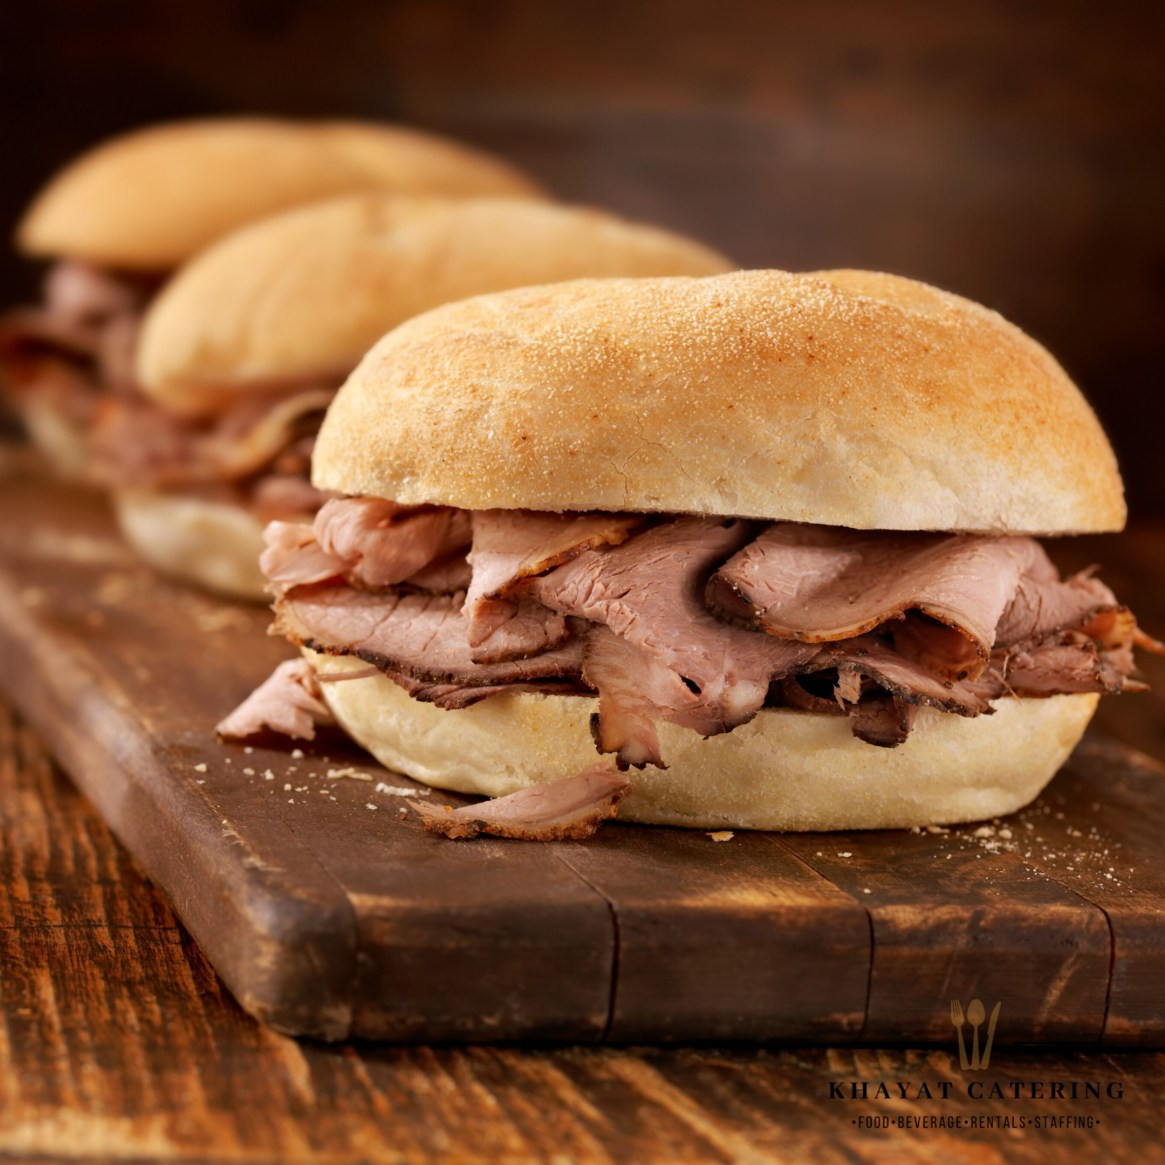 Khayat Catering shaved Prime rib sandwich